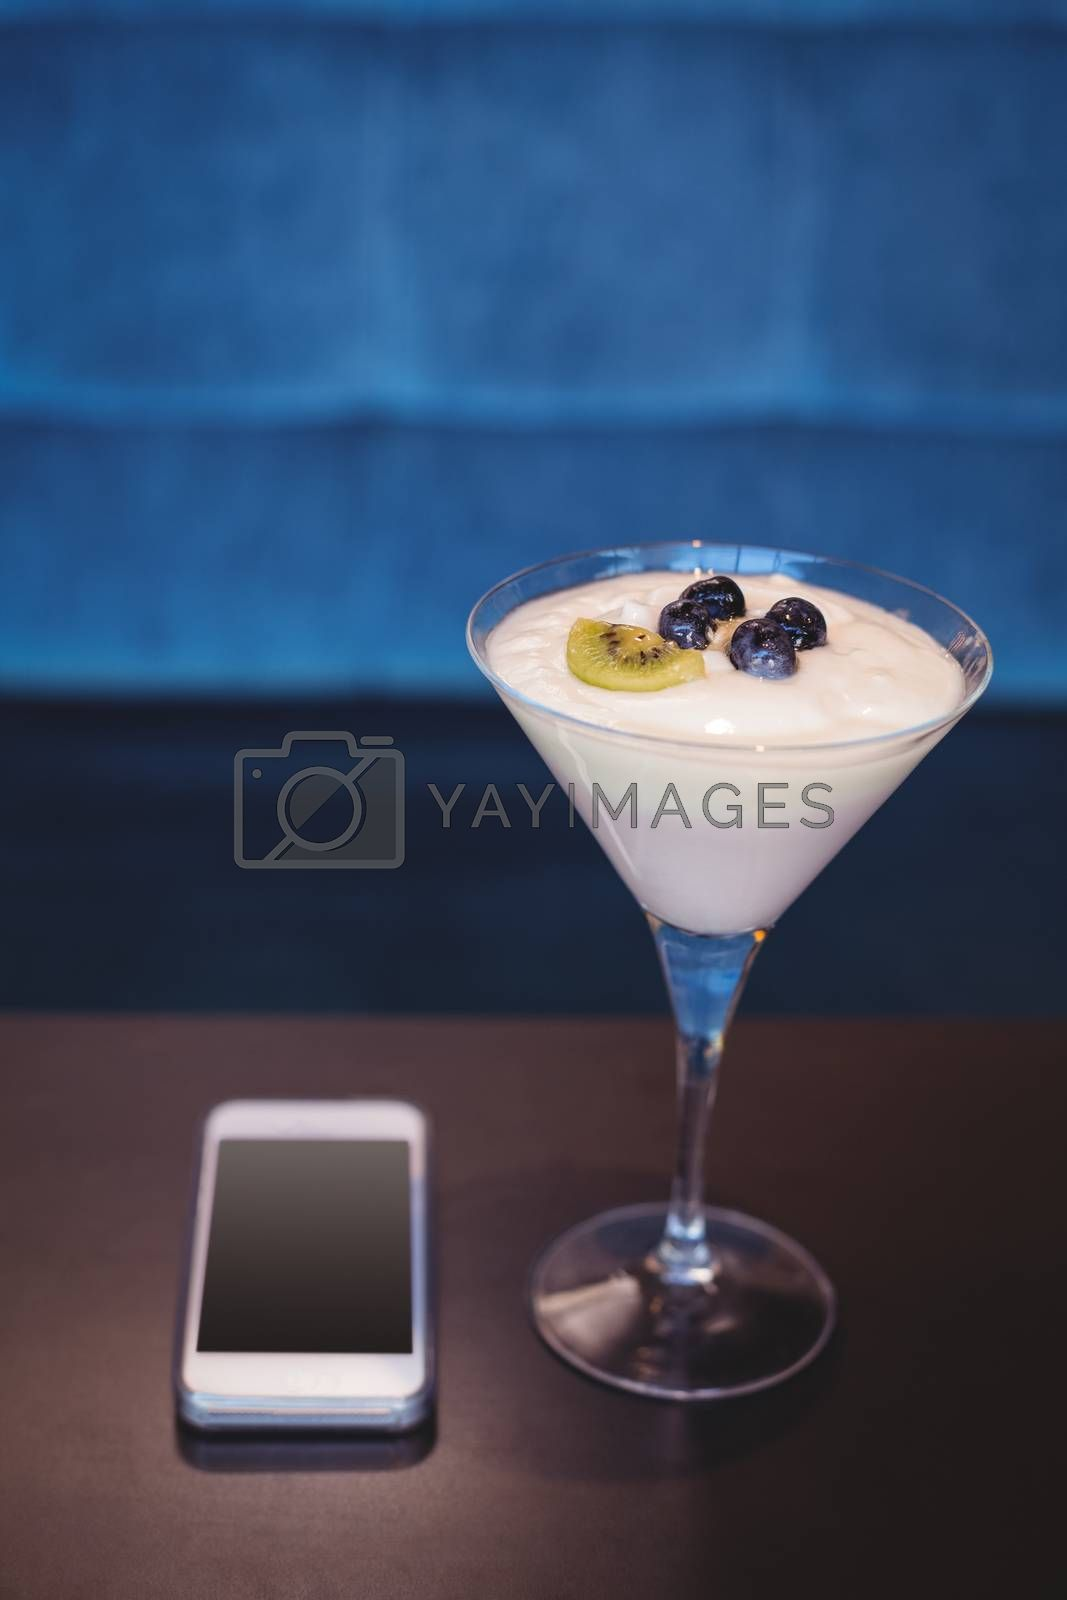 Royalty free image of close up view of a smartphone and a parfait  by Wavebreakmedia